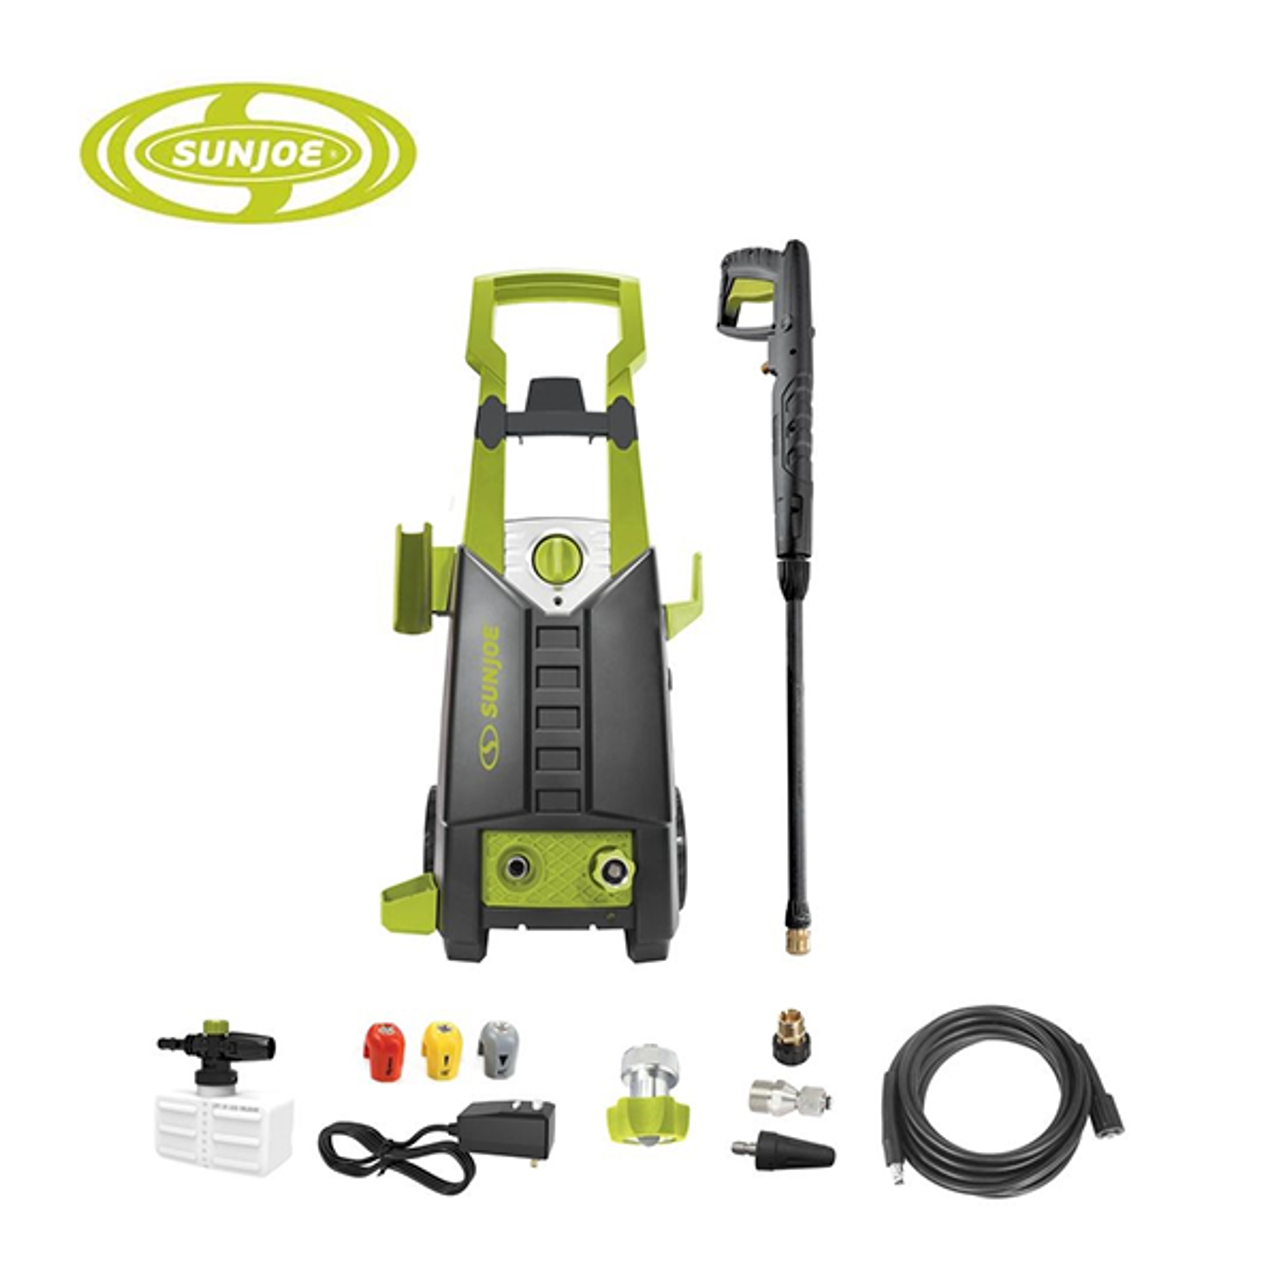 Sun Joe 2050 PSI Pressure Washer with Extension Wand & Foam Cannon $99.99 (50% OFF)